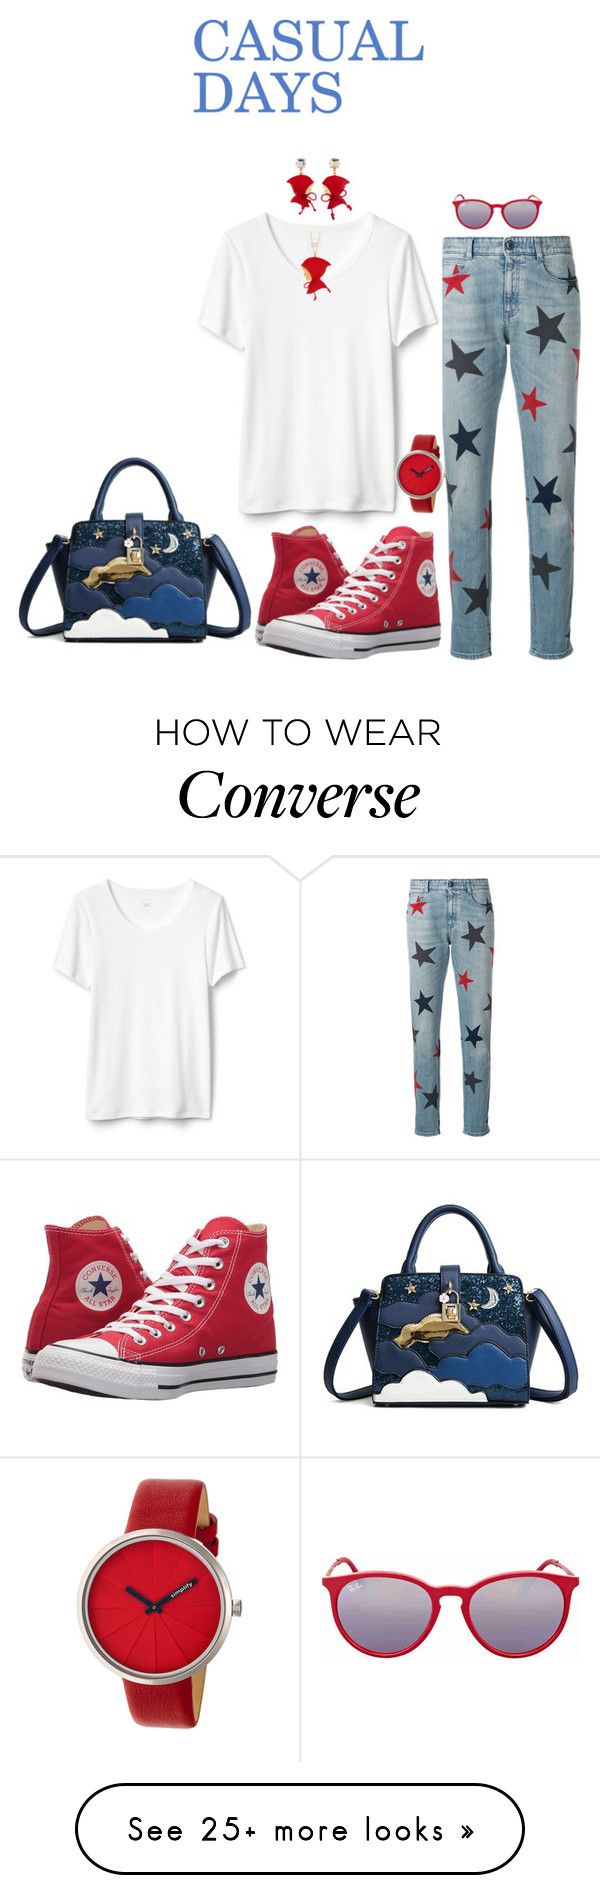 """CASUAL DAYS"" by rebeccadavisblogger on Polyvore featuring STELLA McCARTNEY, Converse, Les Néréides, Simplify and Ray-Ban"